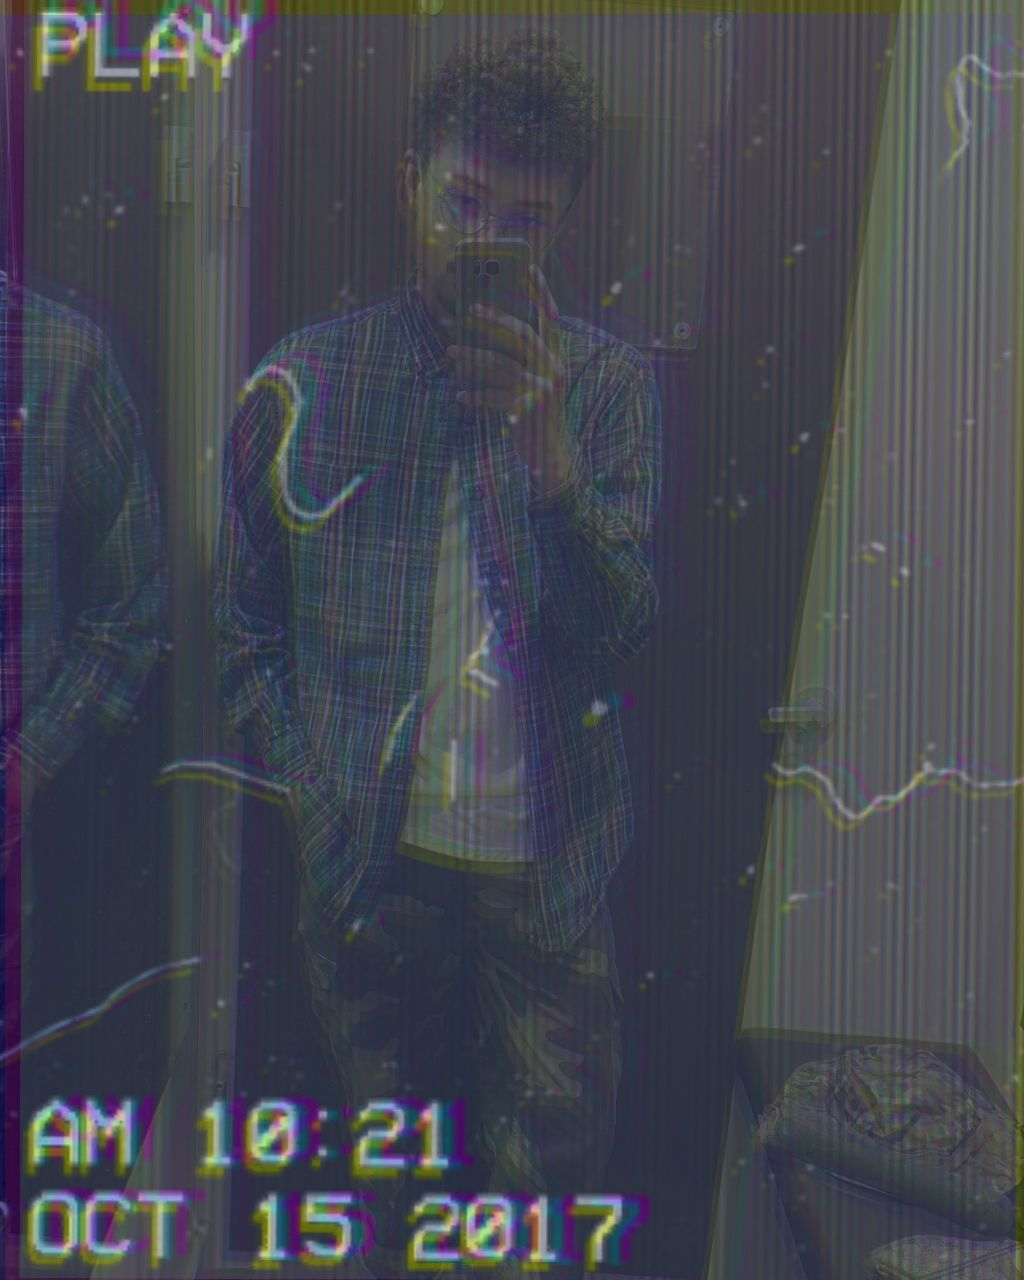 freetoedit vhs edgy cute 90s vintage